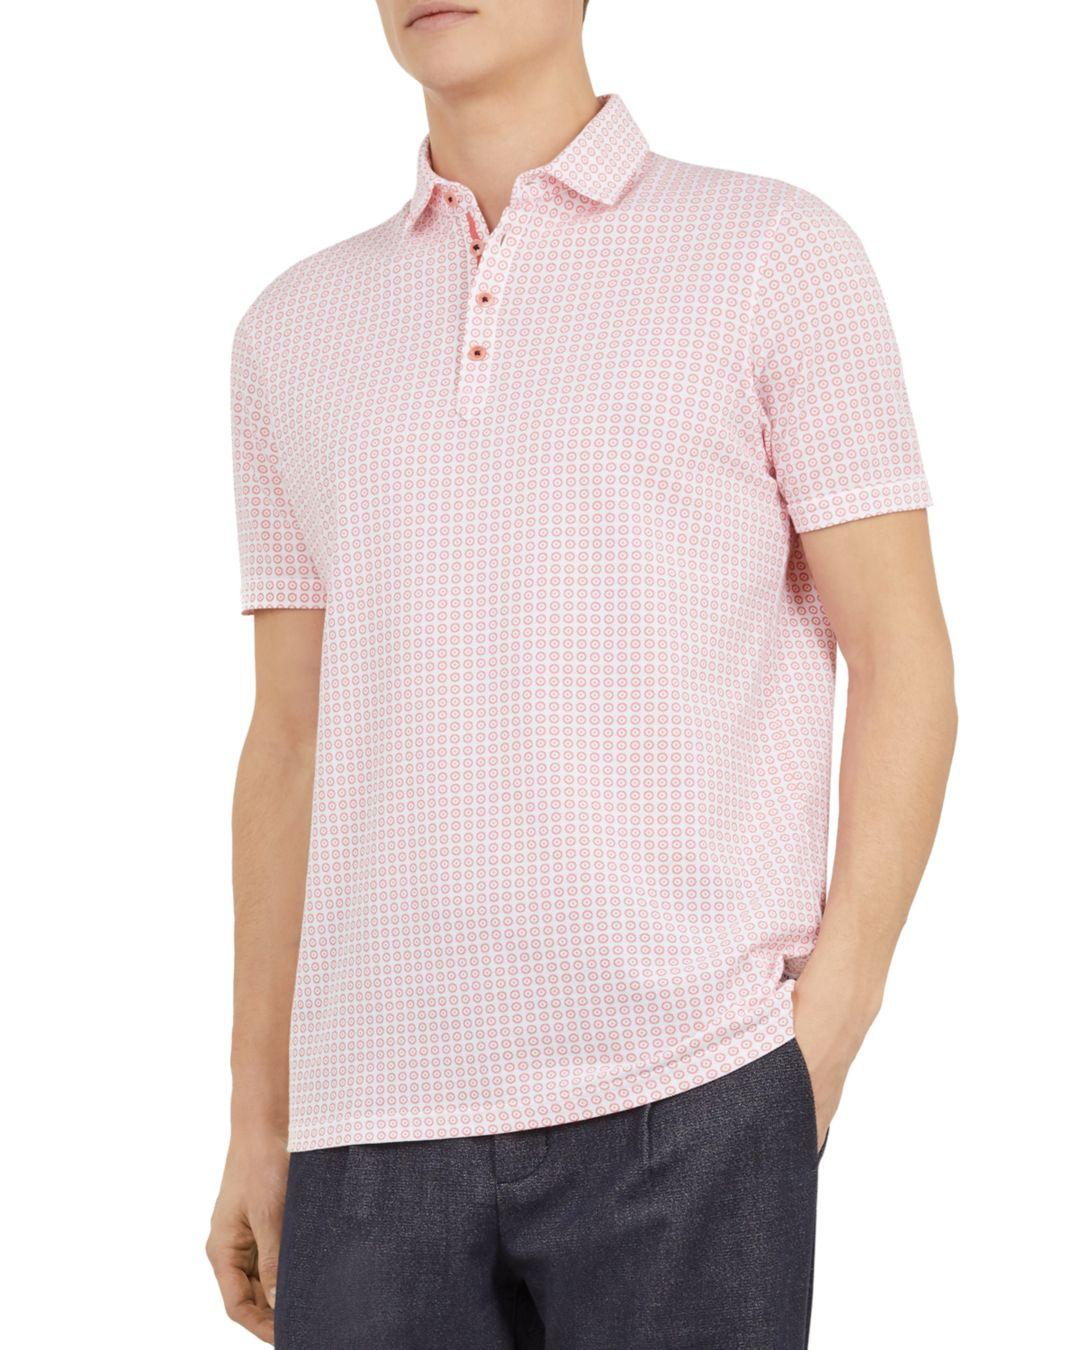 a112a006 Ted Baker Flee Geometric Print Regular Fit Polo Shirt in Pink for ...